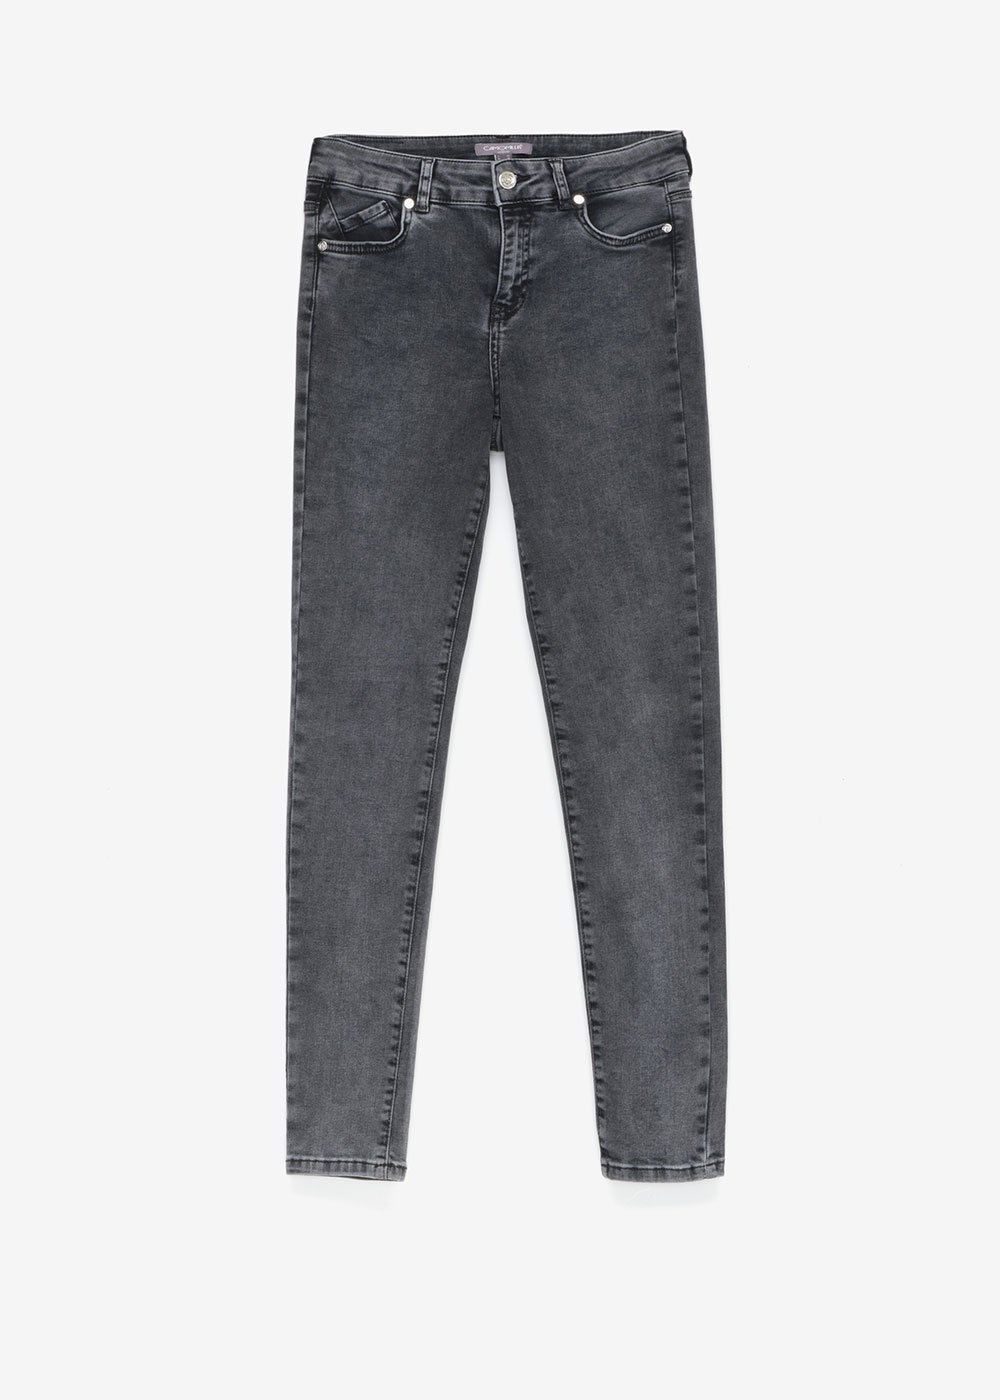 Skinny denims with silver details - Dark Grey - Woman